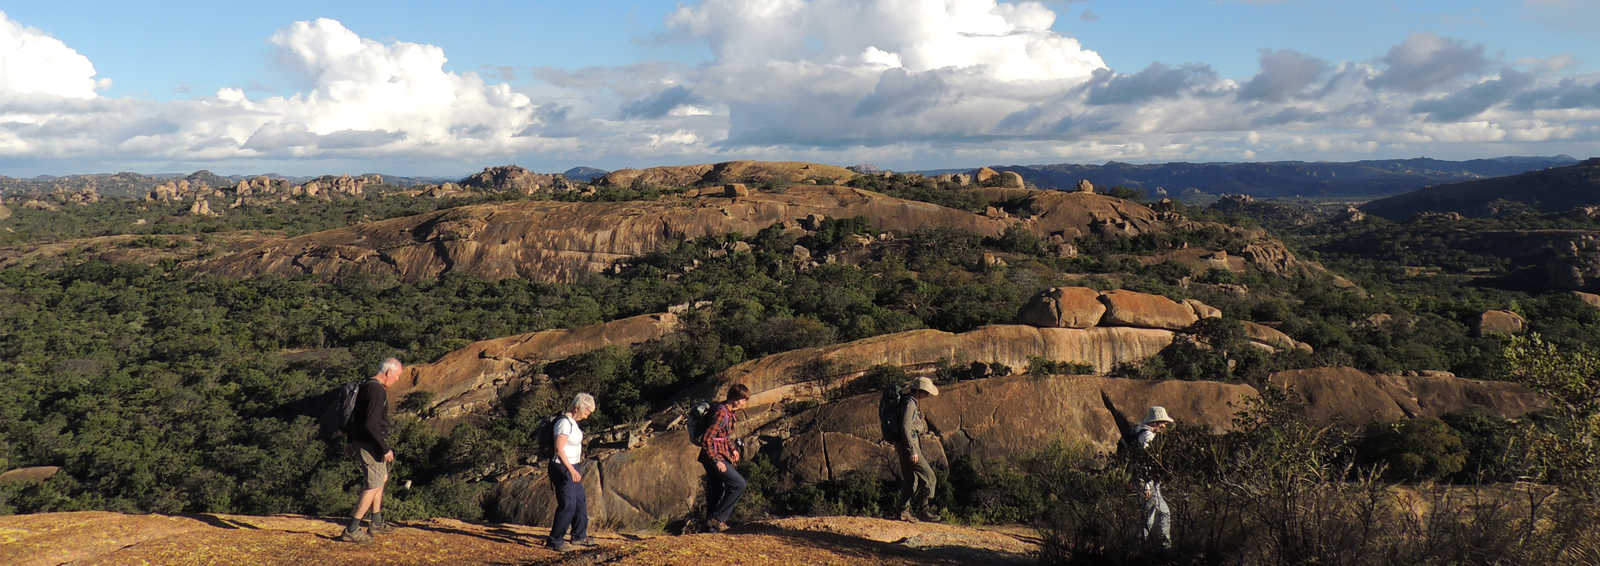 Sunset in Matobo National Park